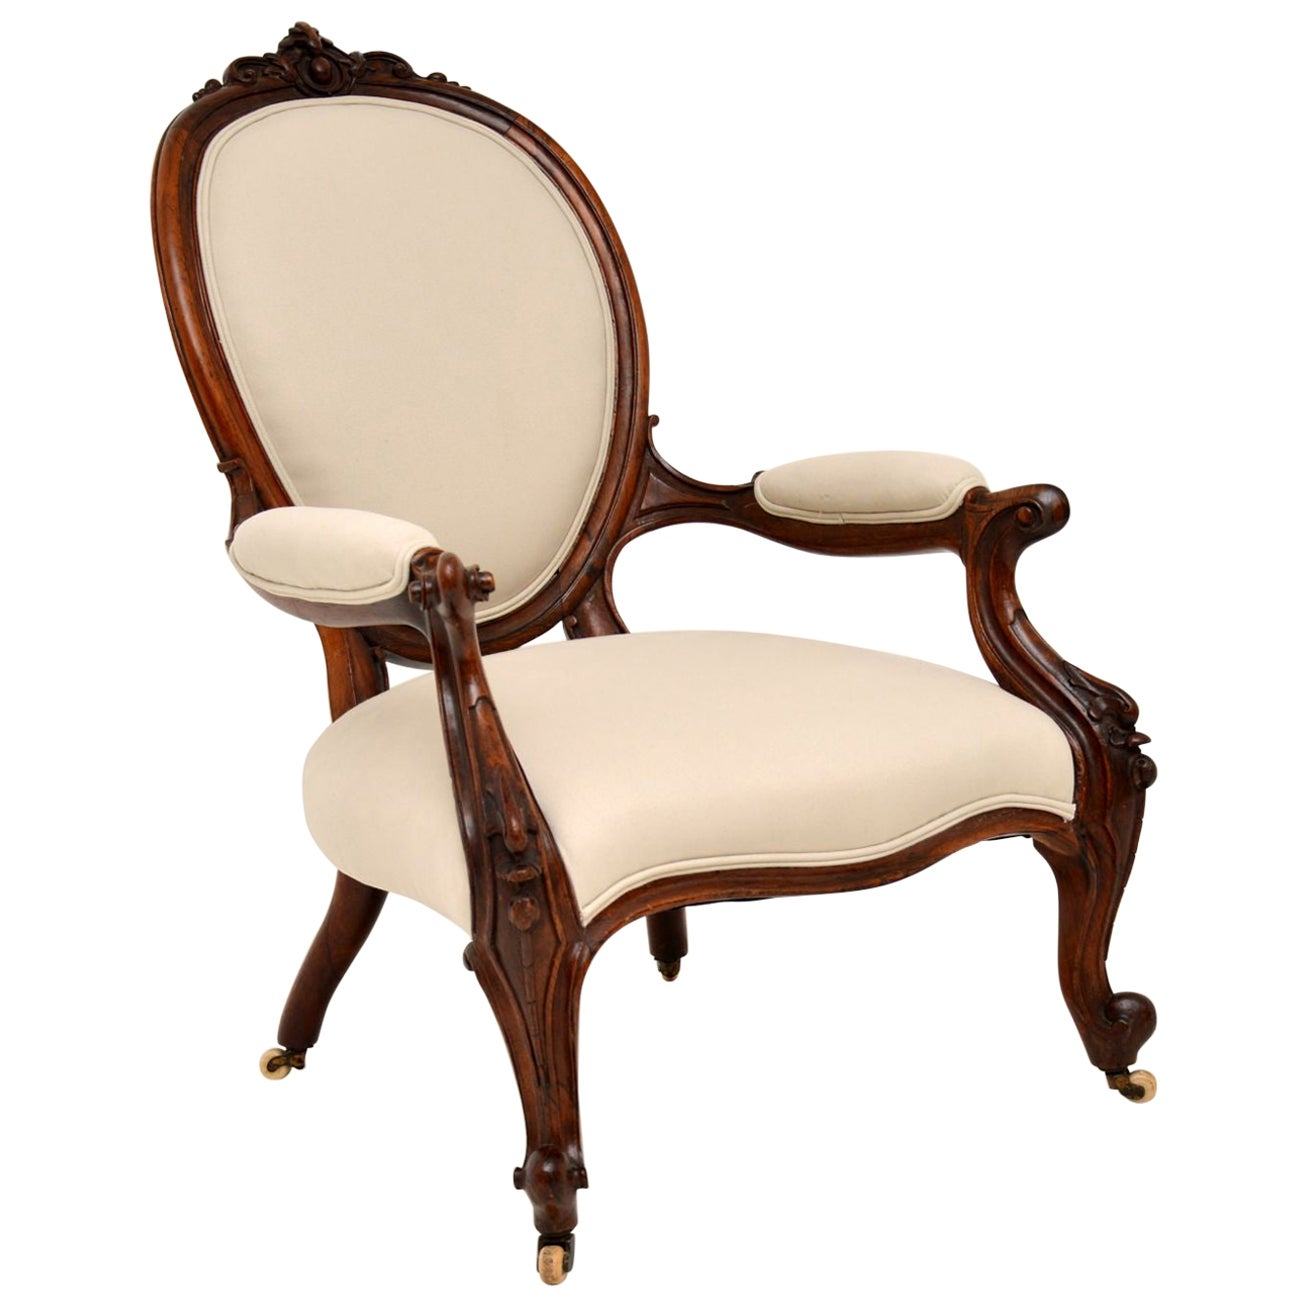 Carved Antique Victorian Armchair